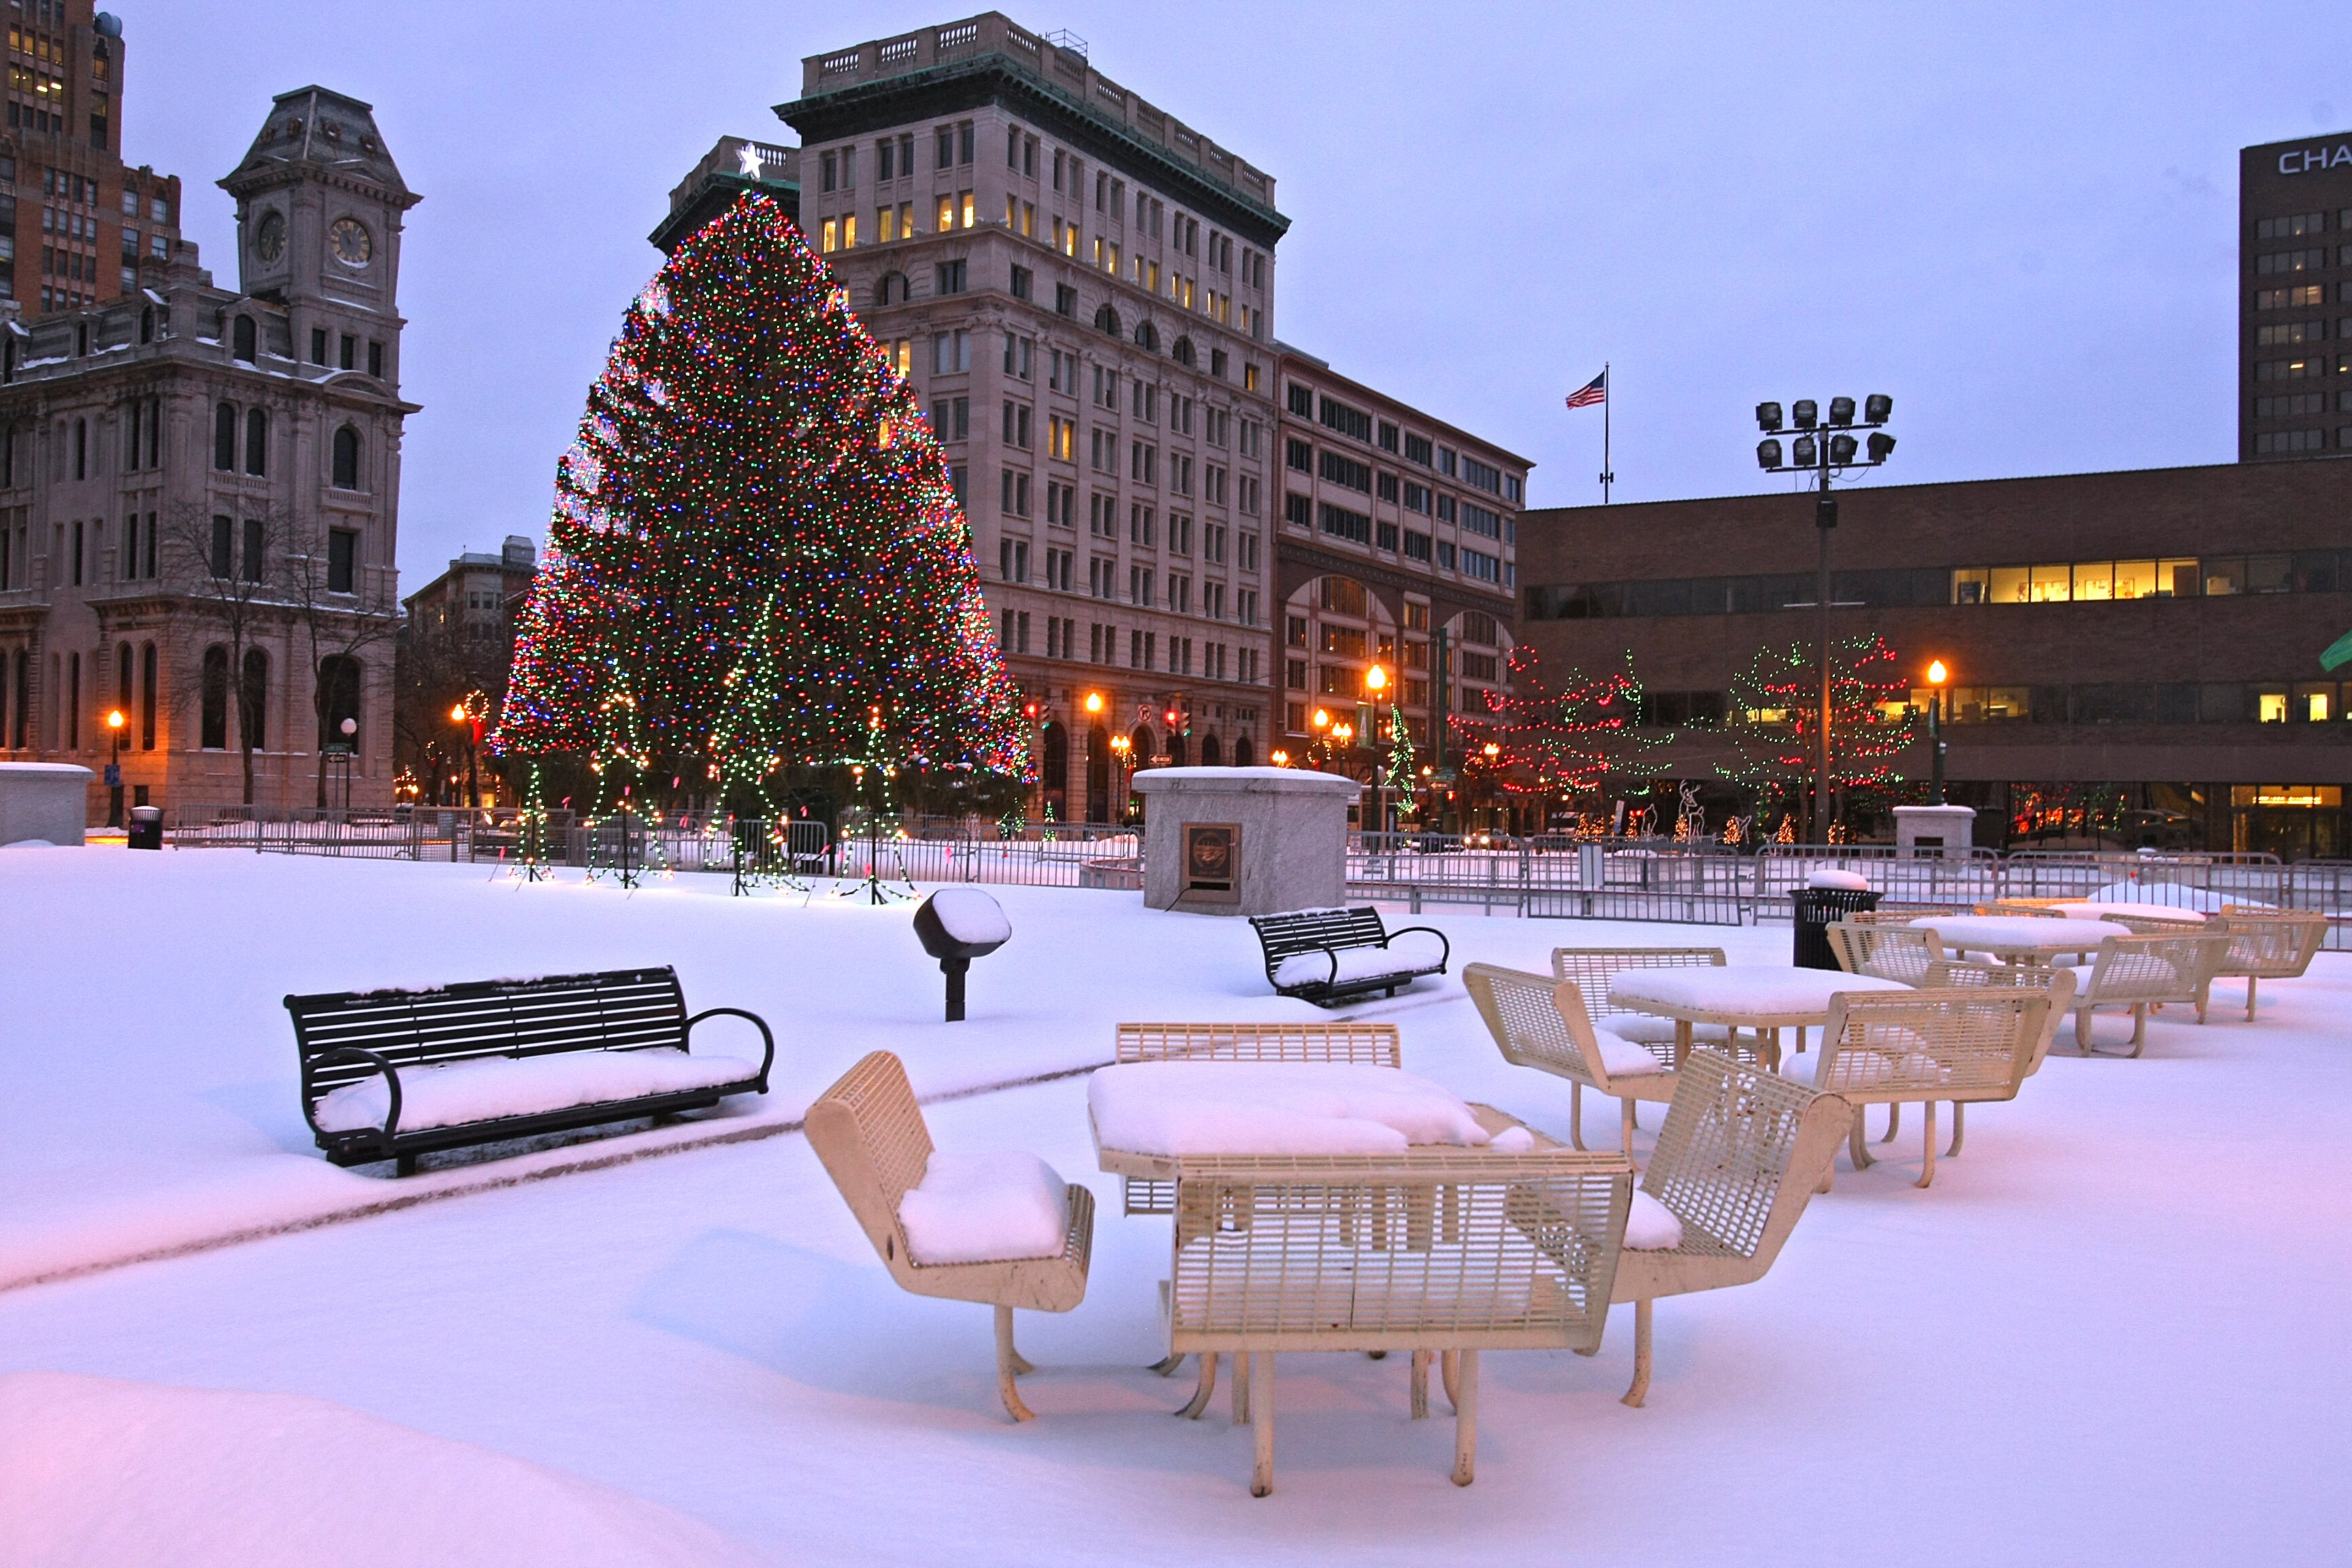 Snow covering the tables and benches after snow yesterday in Clinton Square, Syracuse, NY. Dick Blume/The Post Standard